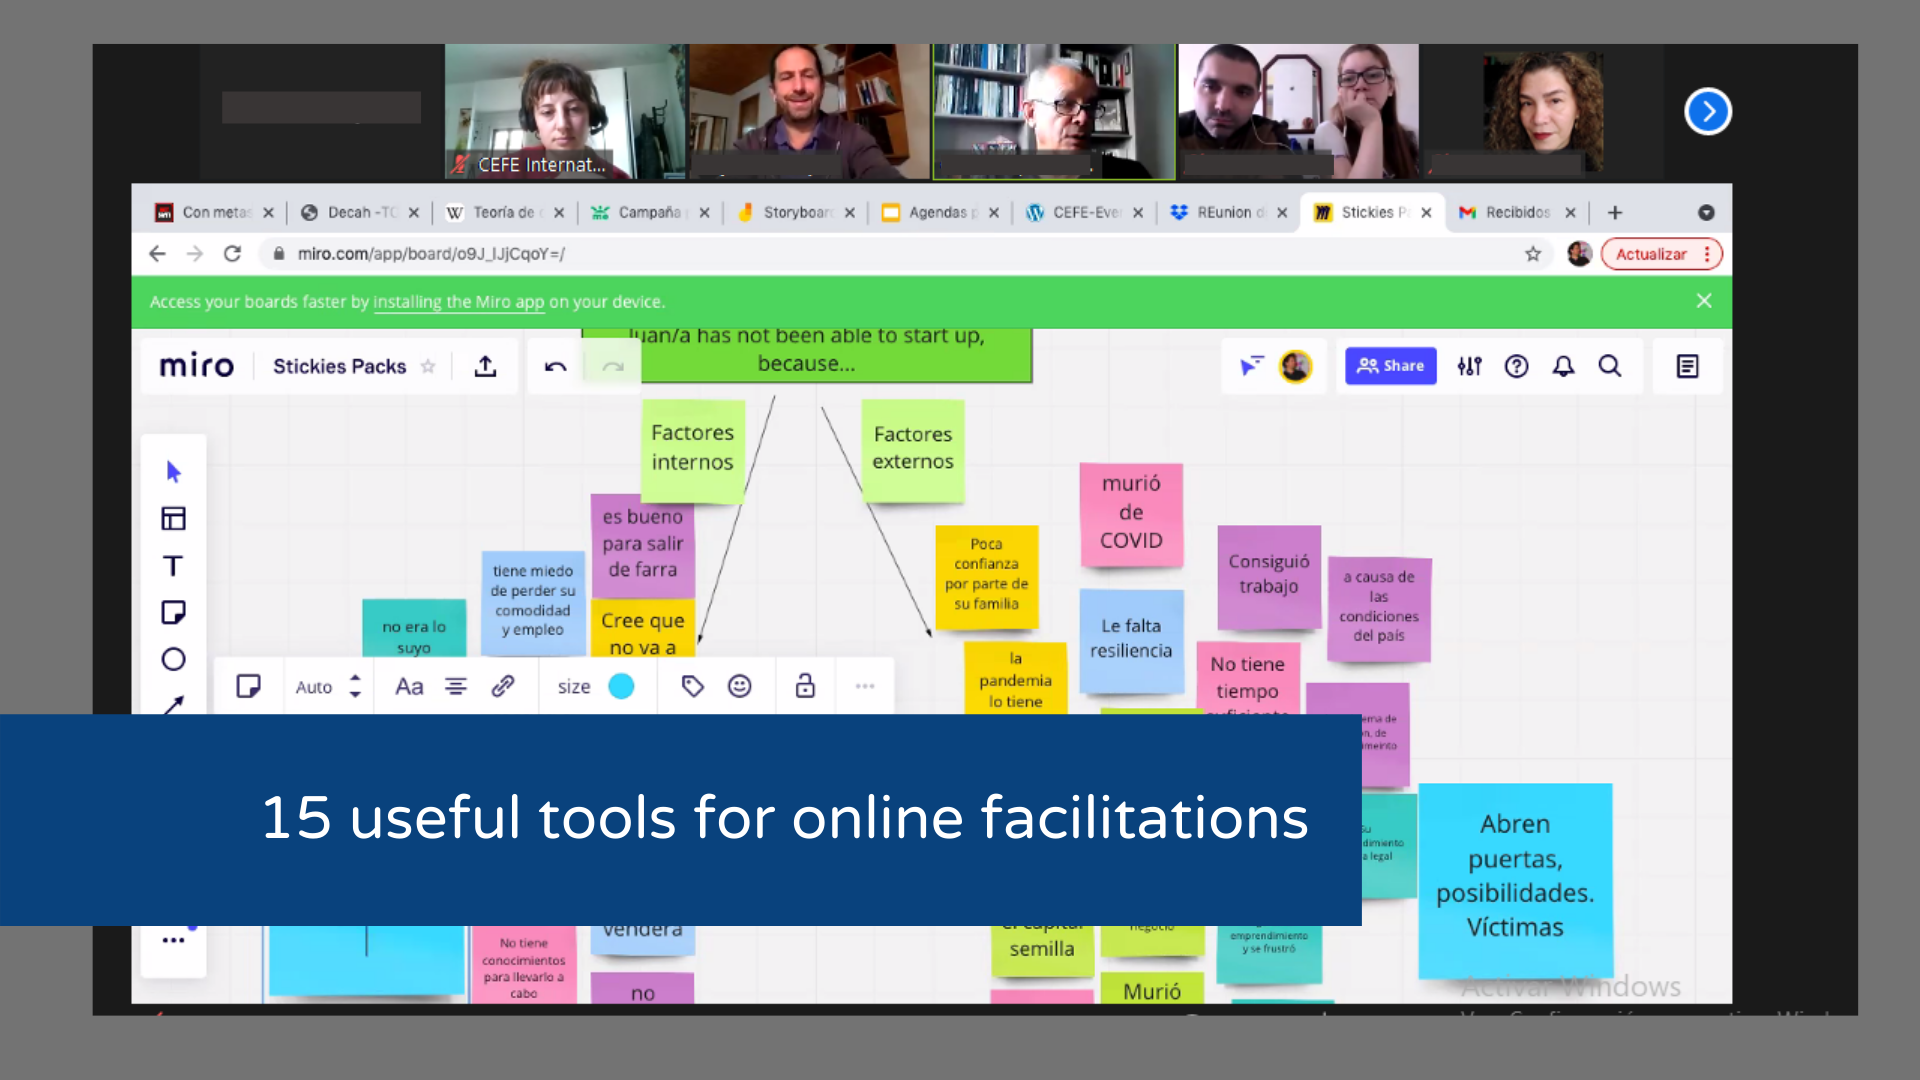 15 useful online tools for online facilitations